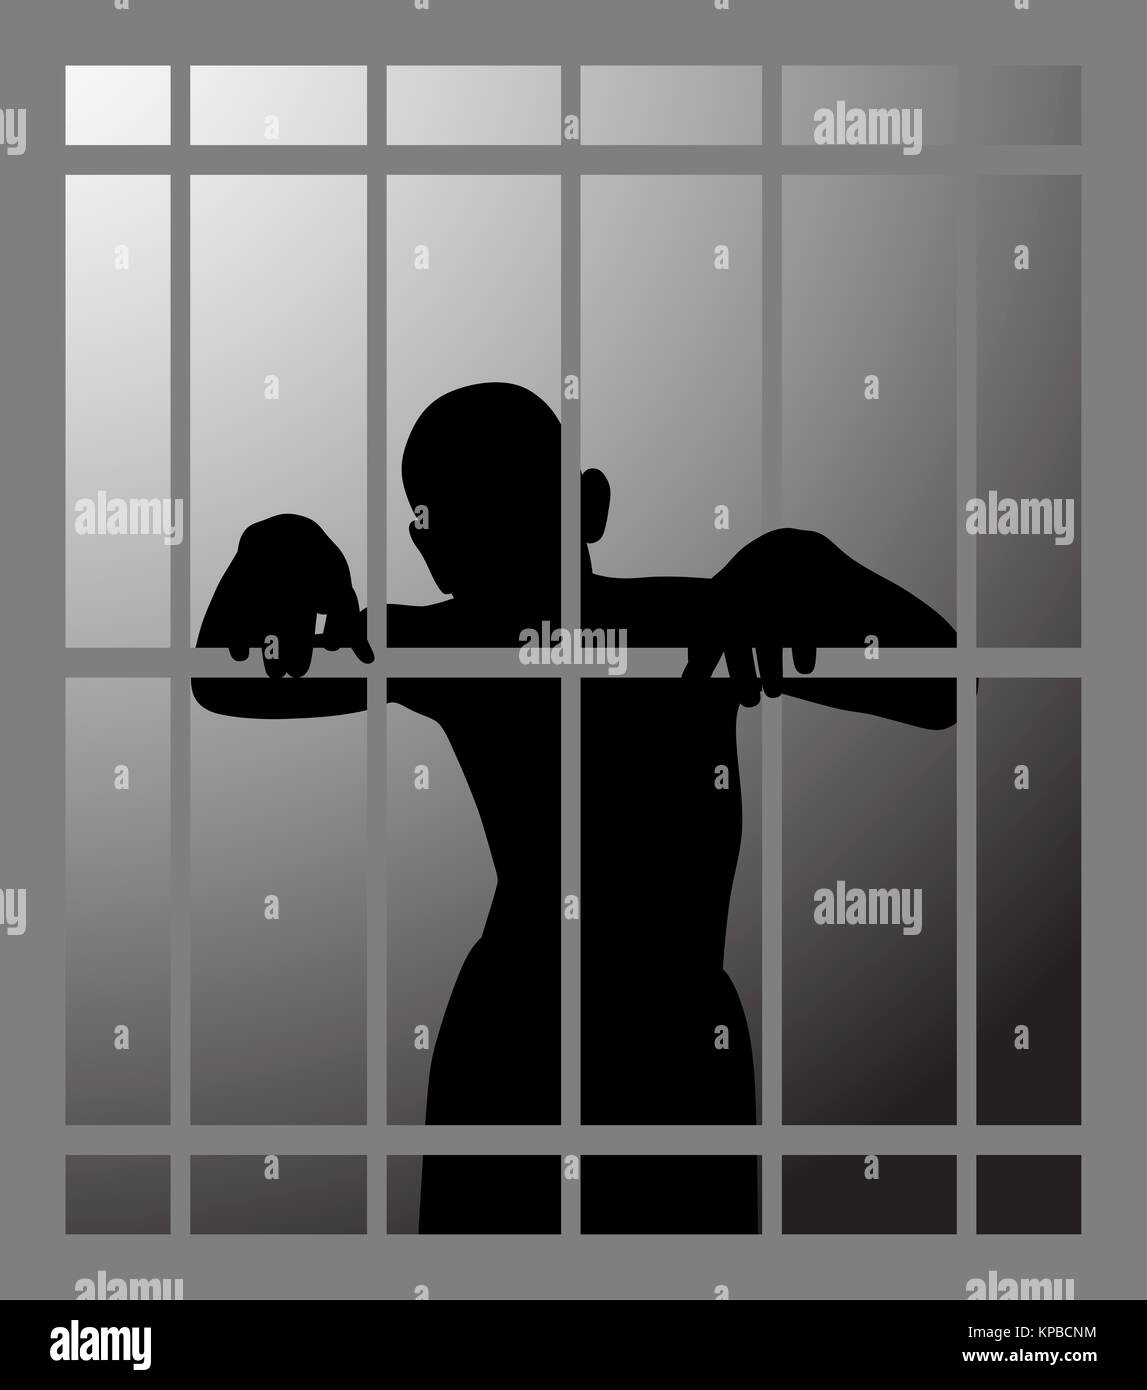 Man In Prison Stock Photos & Man In Prison Stock Images